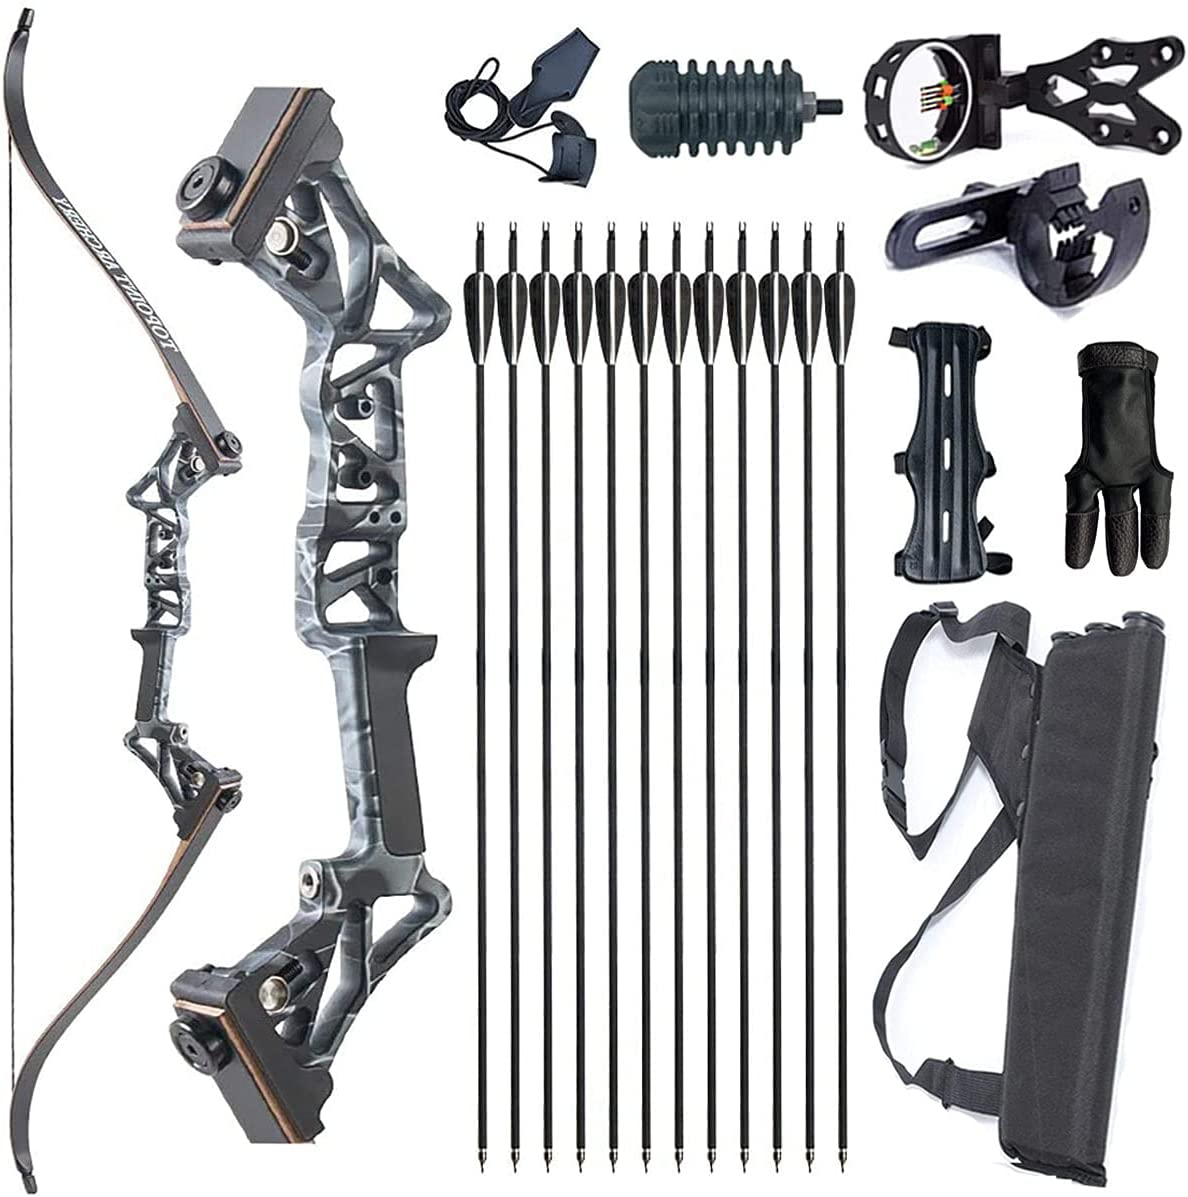 Monleap R3 Takedown Max 65% OFF Recurve Bow and Arrows Archery f Bargain sale Set Package